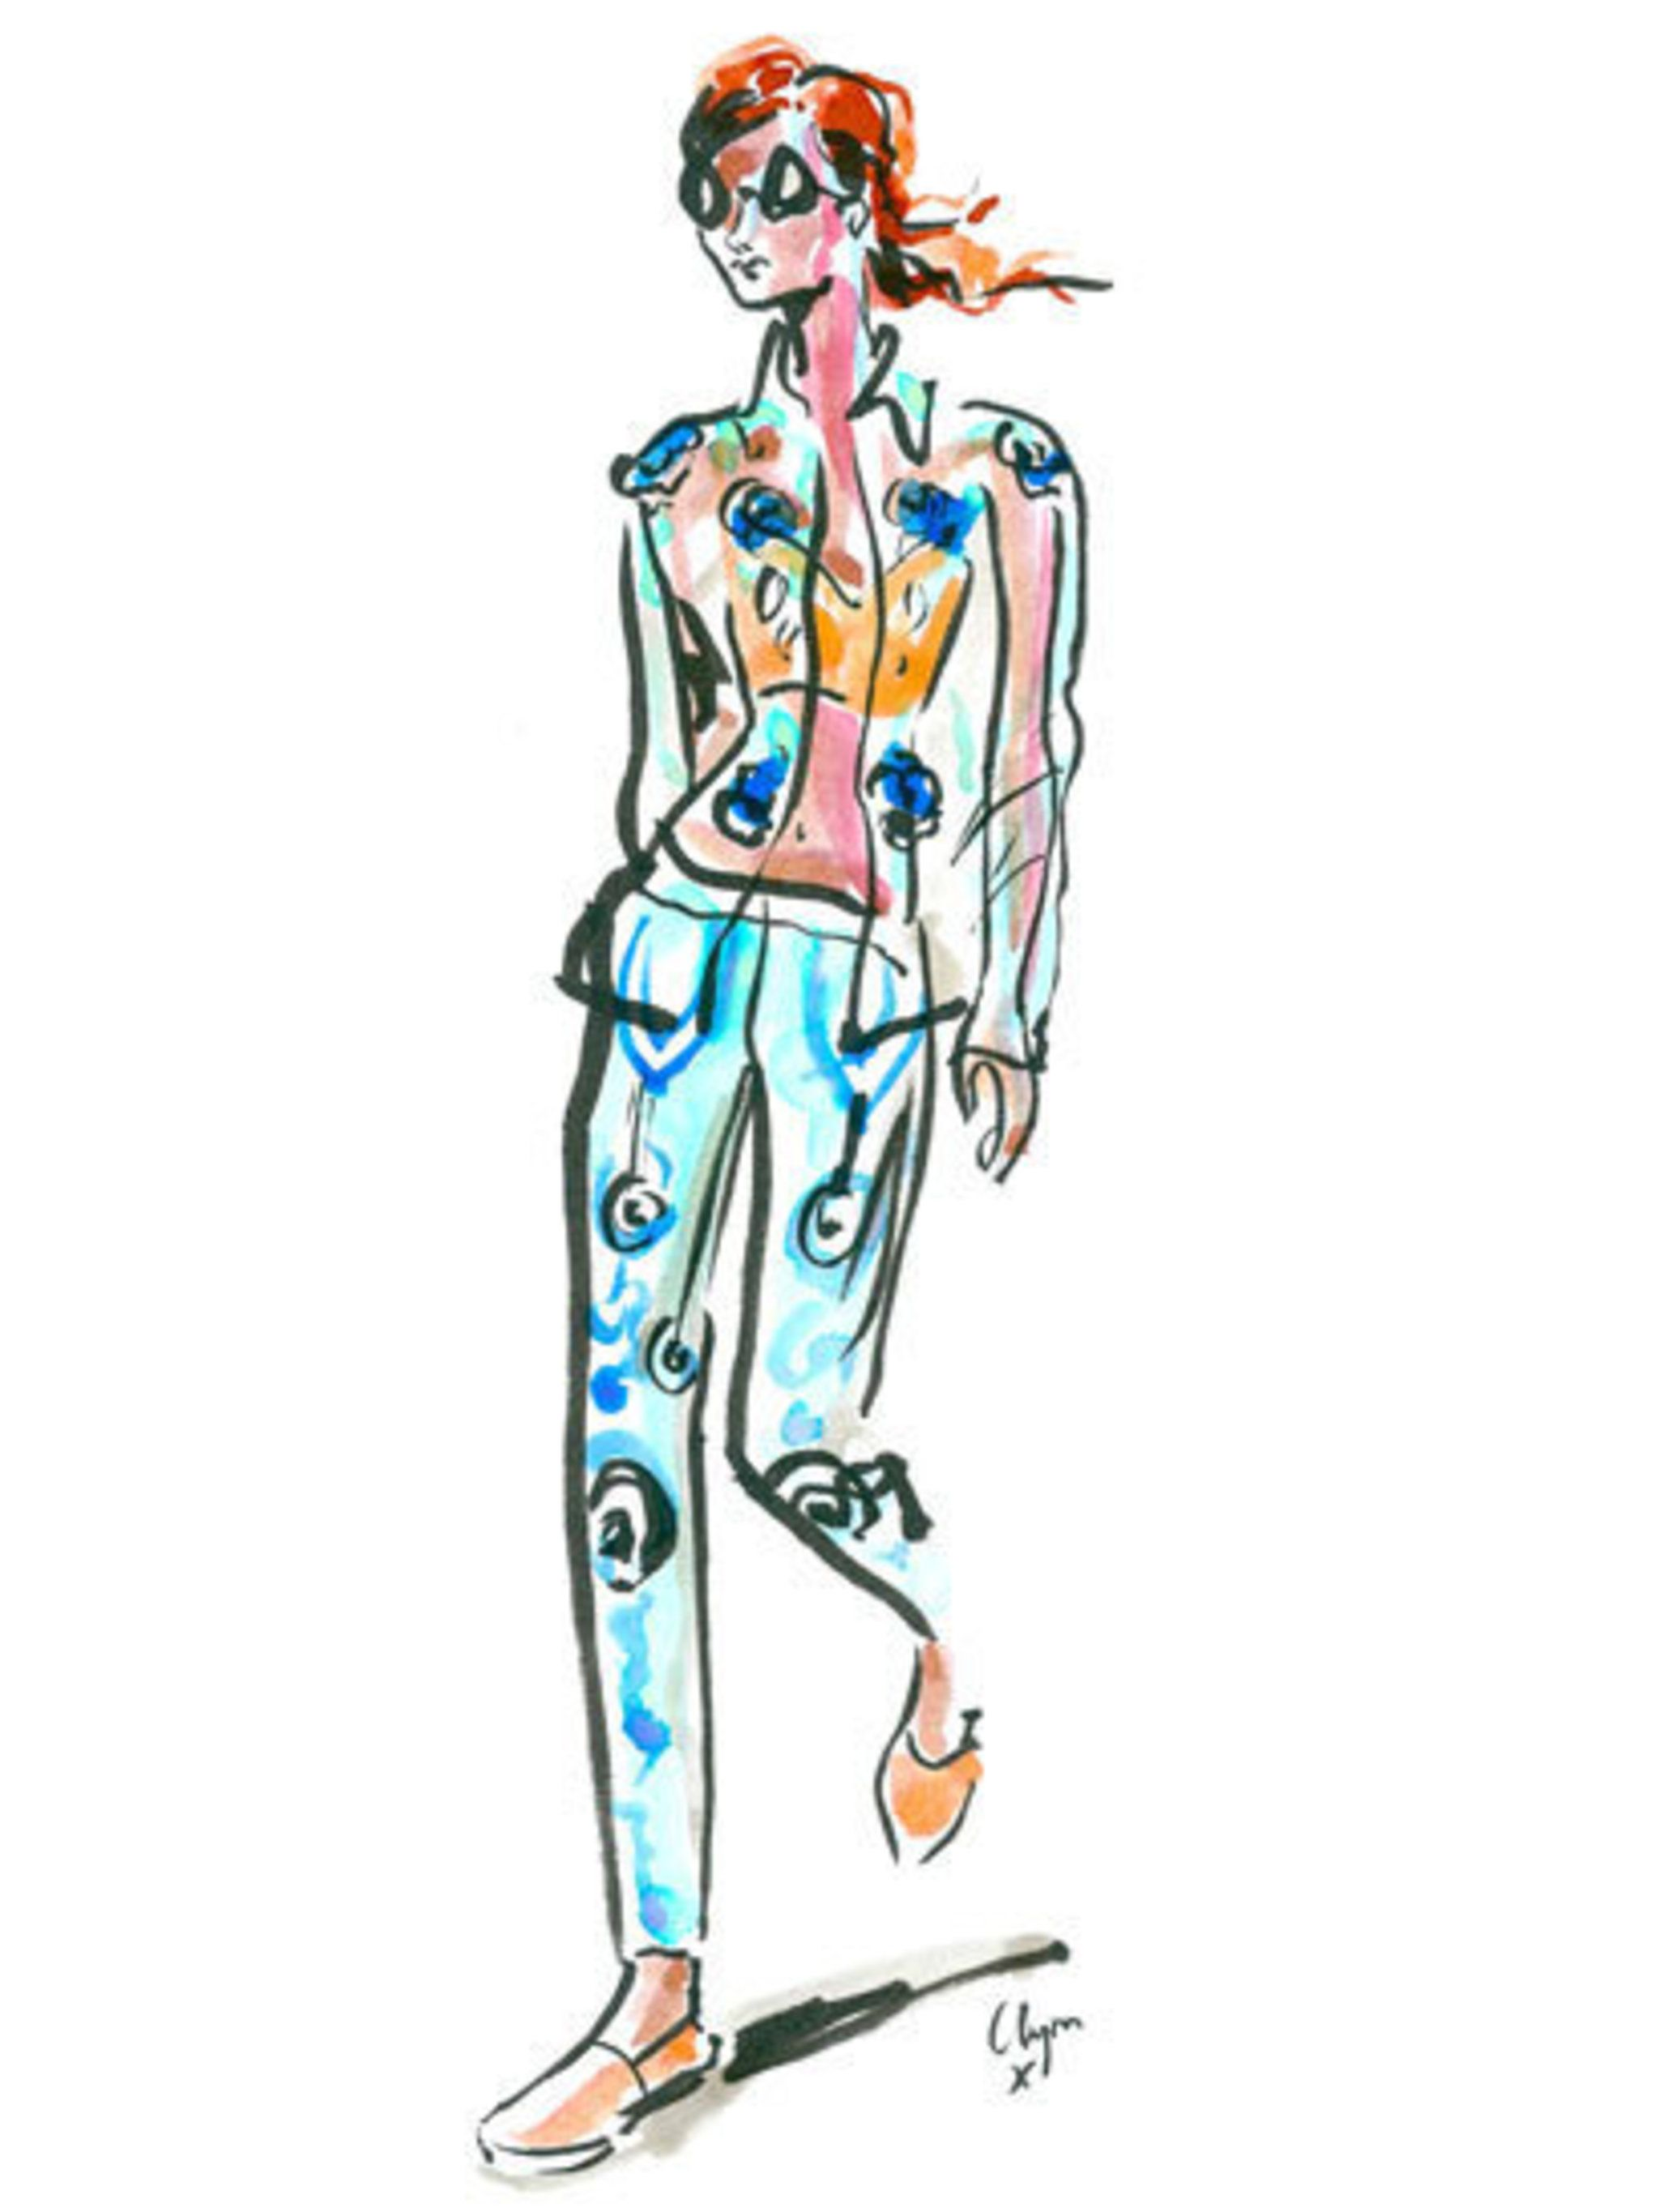 <p>Holly Fulton spring summer 2013 as illustrated by Clym Evernden</p>